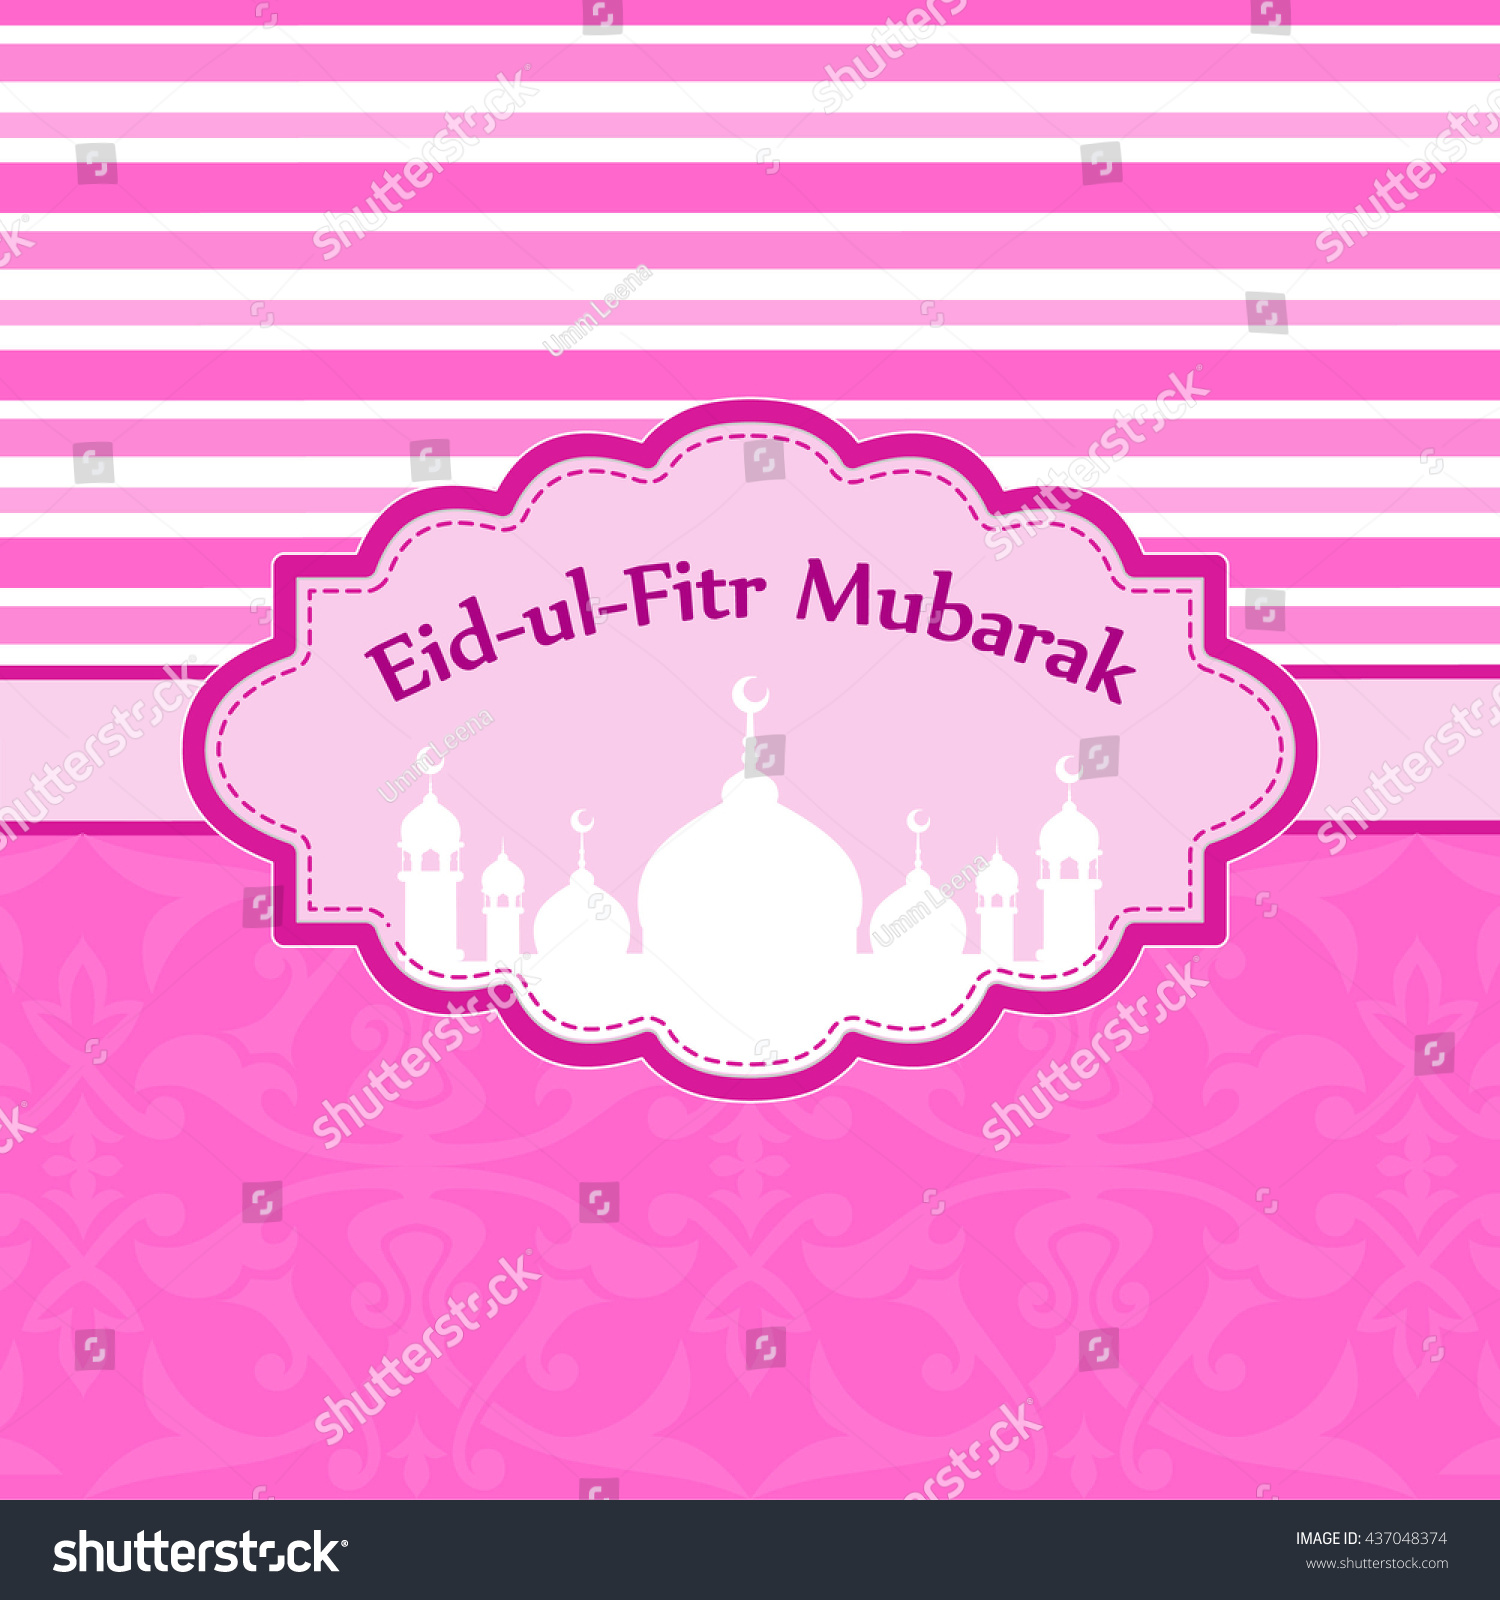 Amazing Hajj Eid Al-Fitr Decorations - stock-vector-sticker-or-label-design-for-eid-al-fitr-celebration-design-decorated-frame-with-mosque-for-month-437048374  Graphic_842341 .jpg